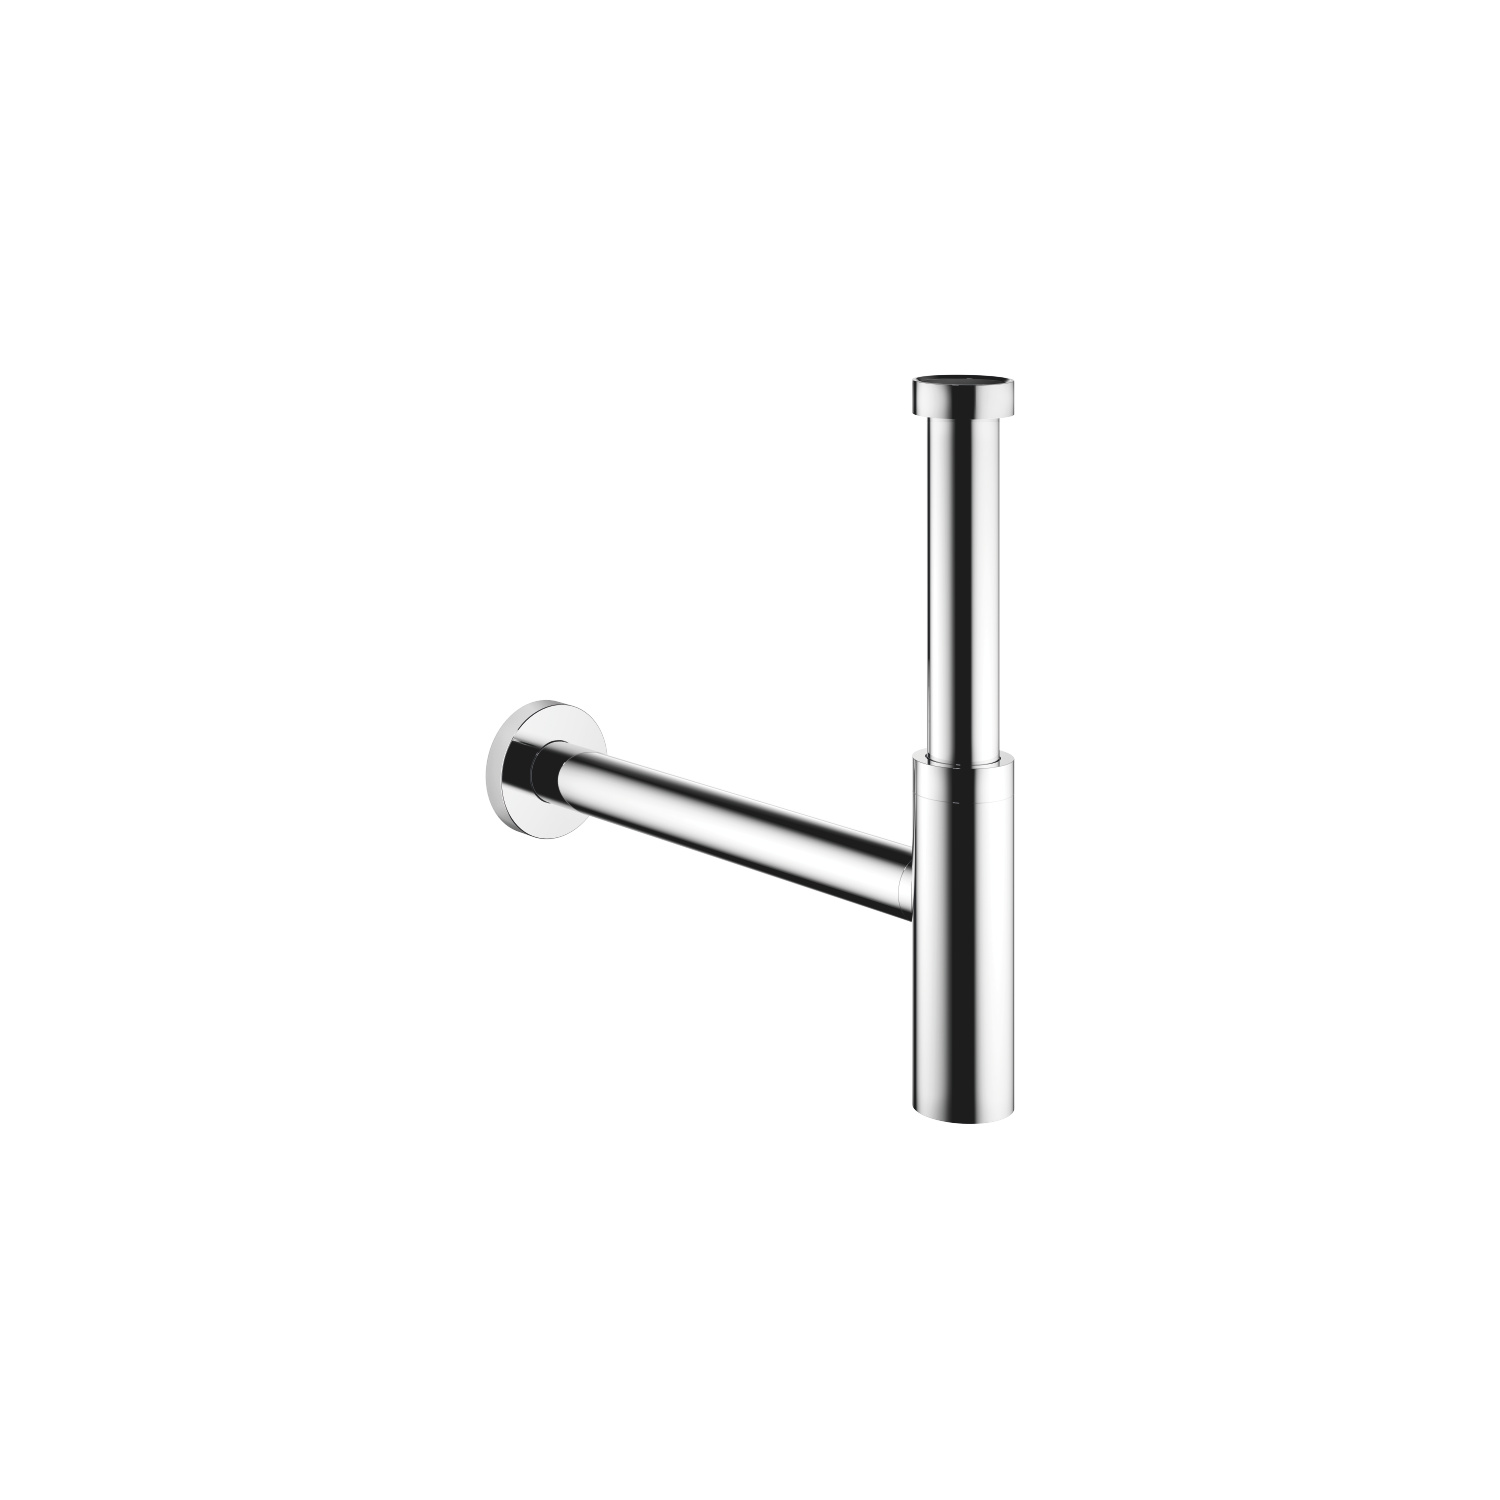 Siphon for basin - polished chrome - 10 060 970-00